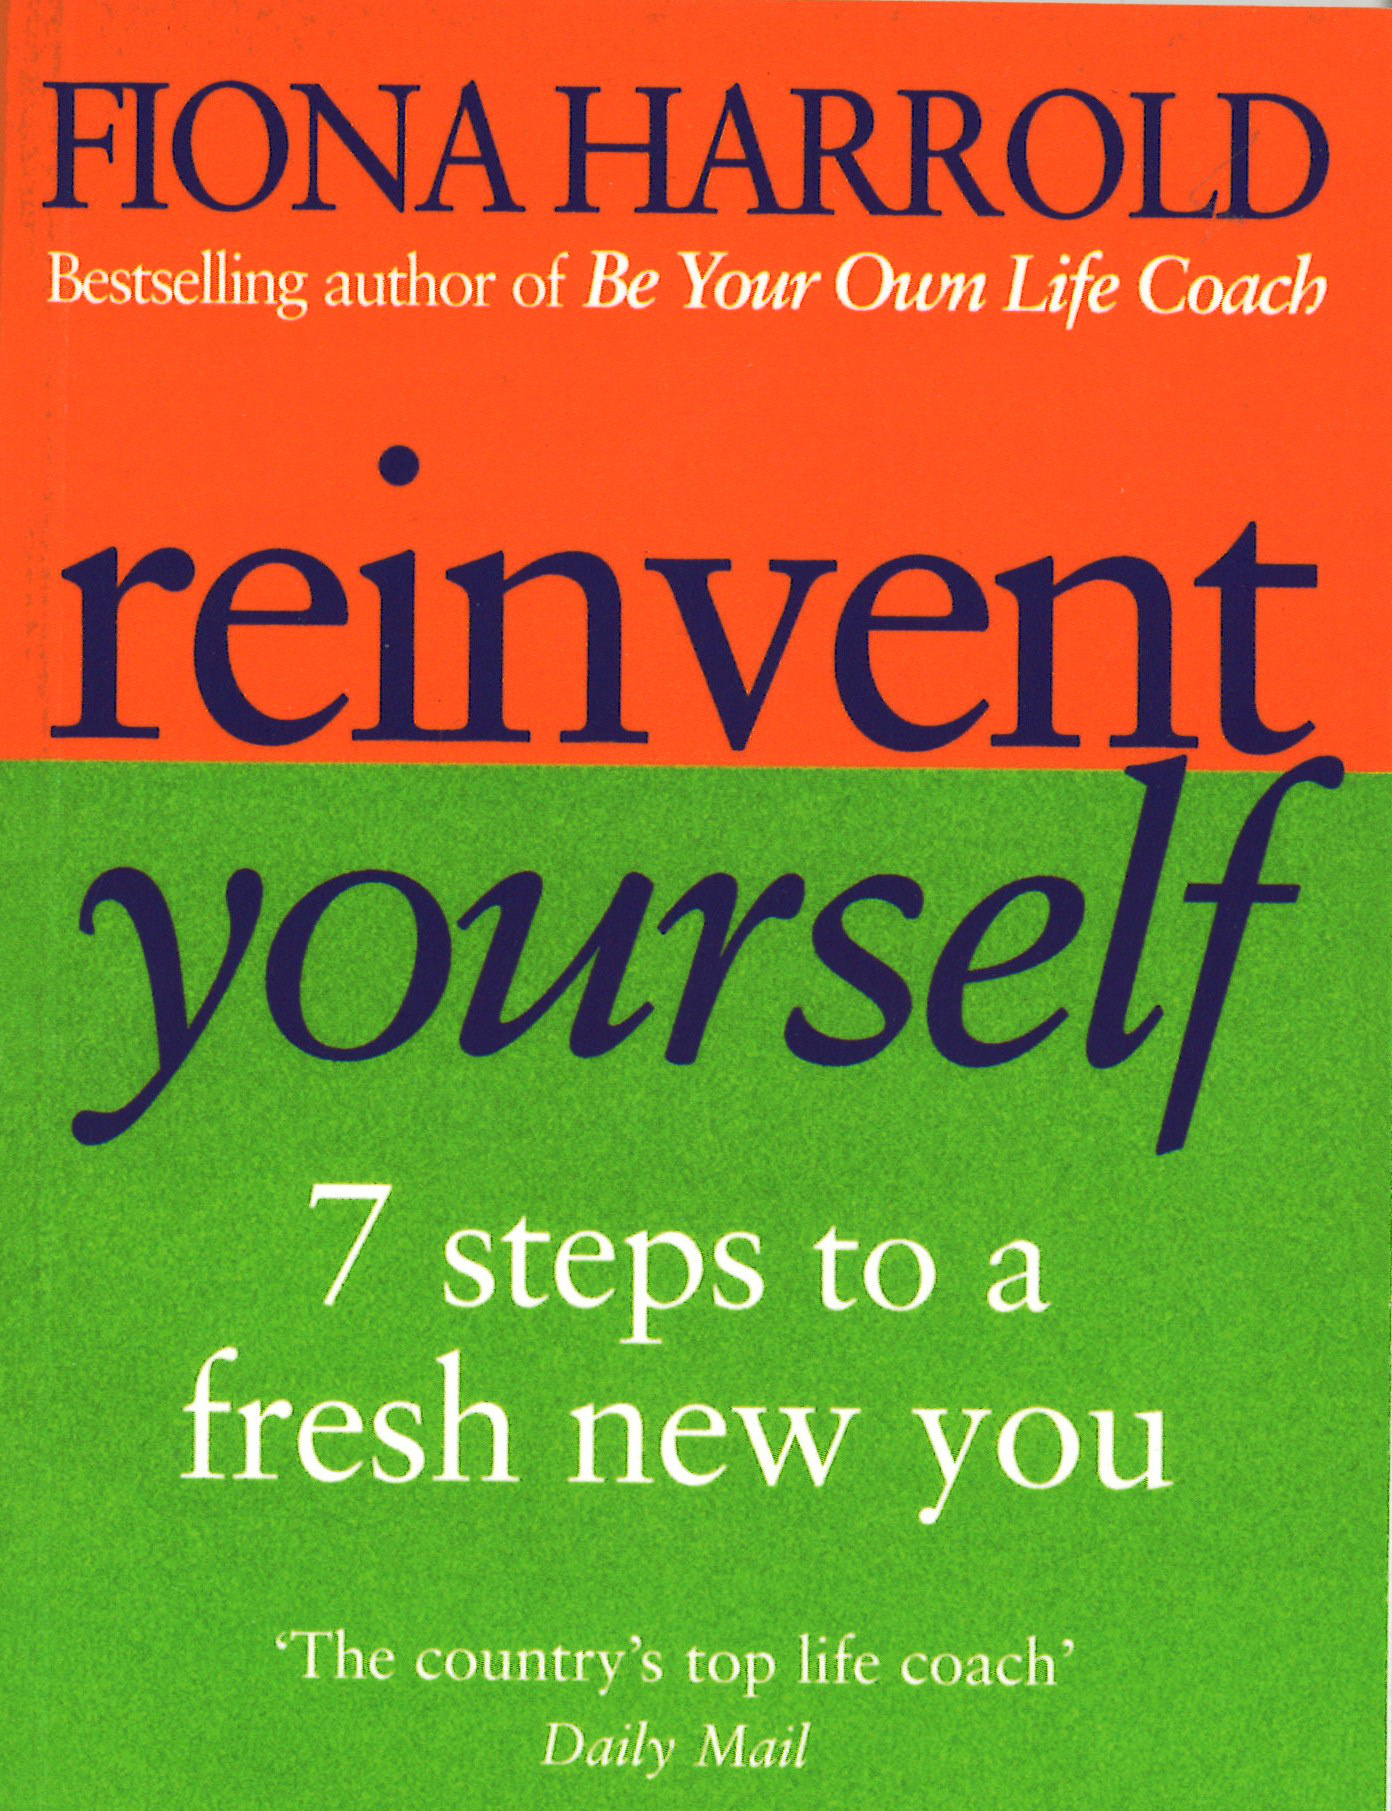 reinventing oneself You may have the need to overcome great hardship, to prove yourself to yourself or others, or you may need to live a better life marriage, divorce, separation, addiction, cancer, near death, new job, failing business, and bankruptcy can all facilitate swift change in one's mindset.